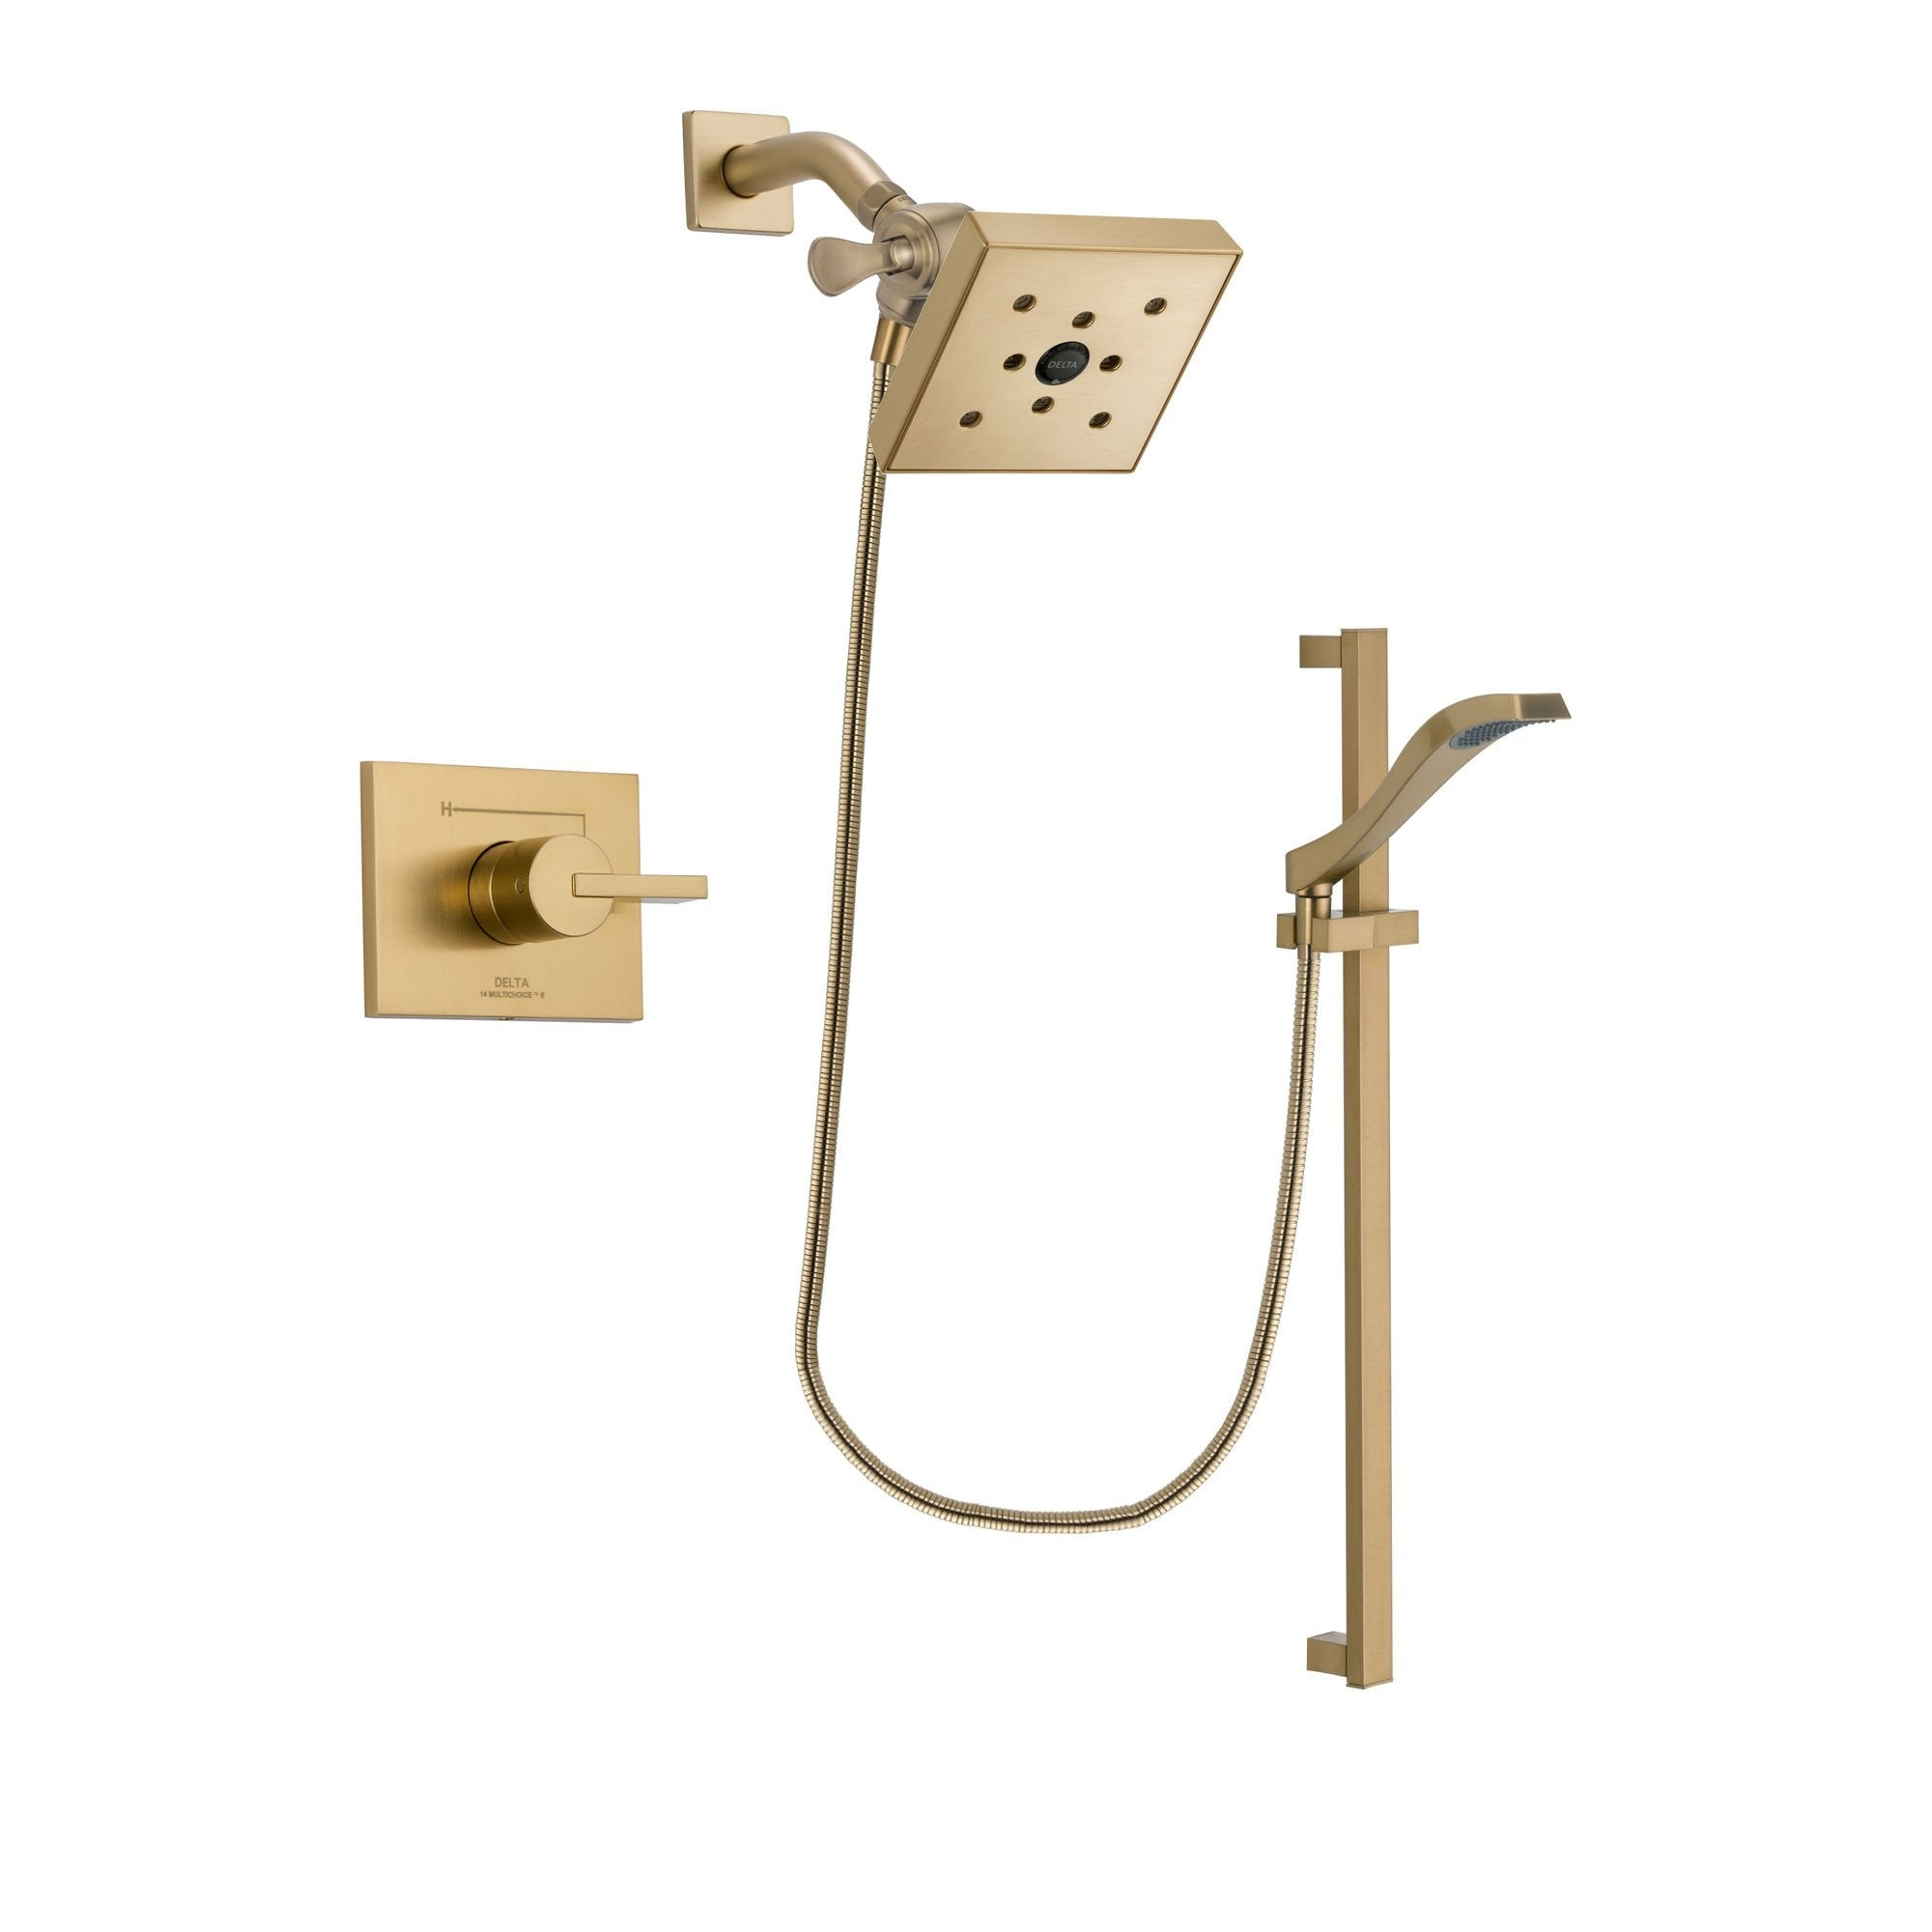 Delta Vero Champagne Bronze Shower Faucet System with Hand Shower DSP3940V